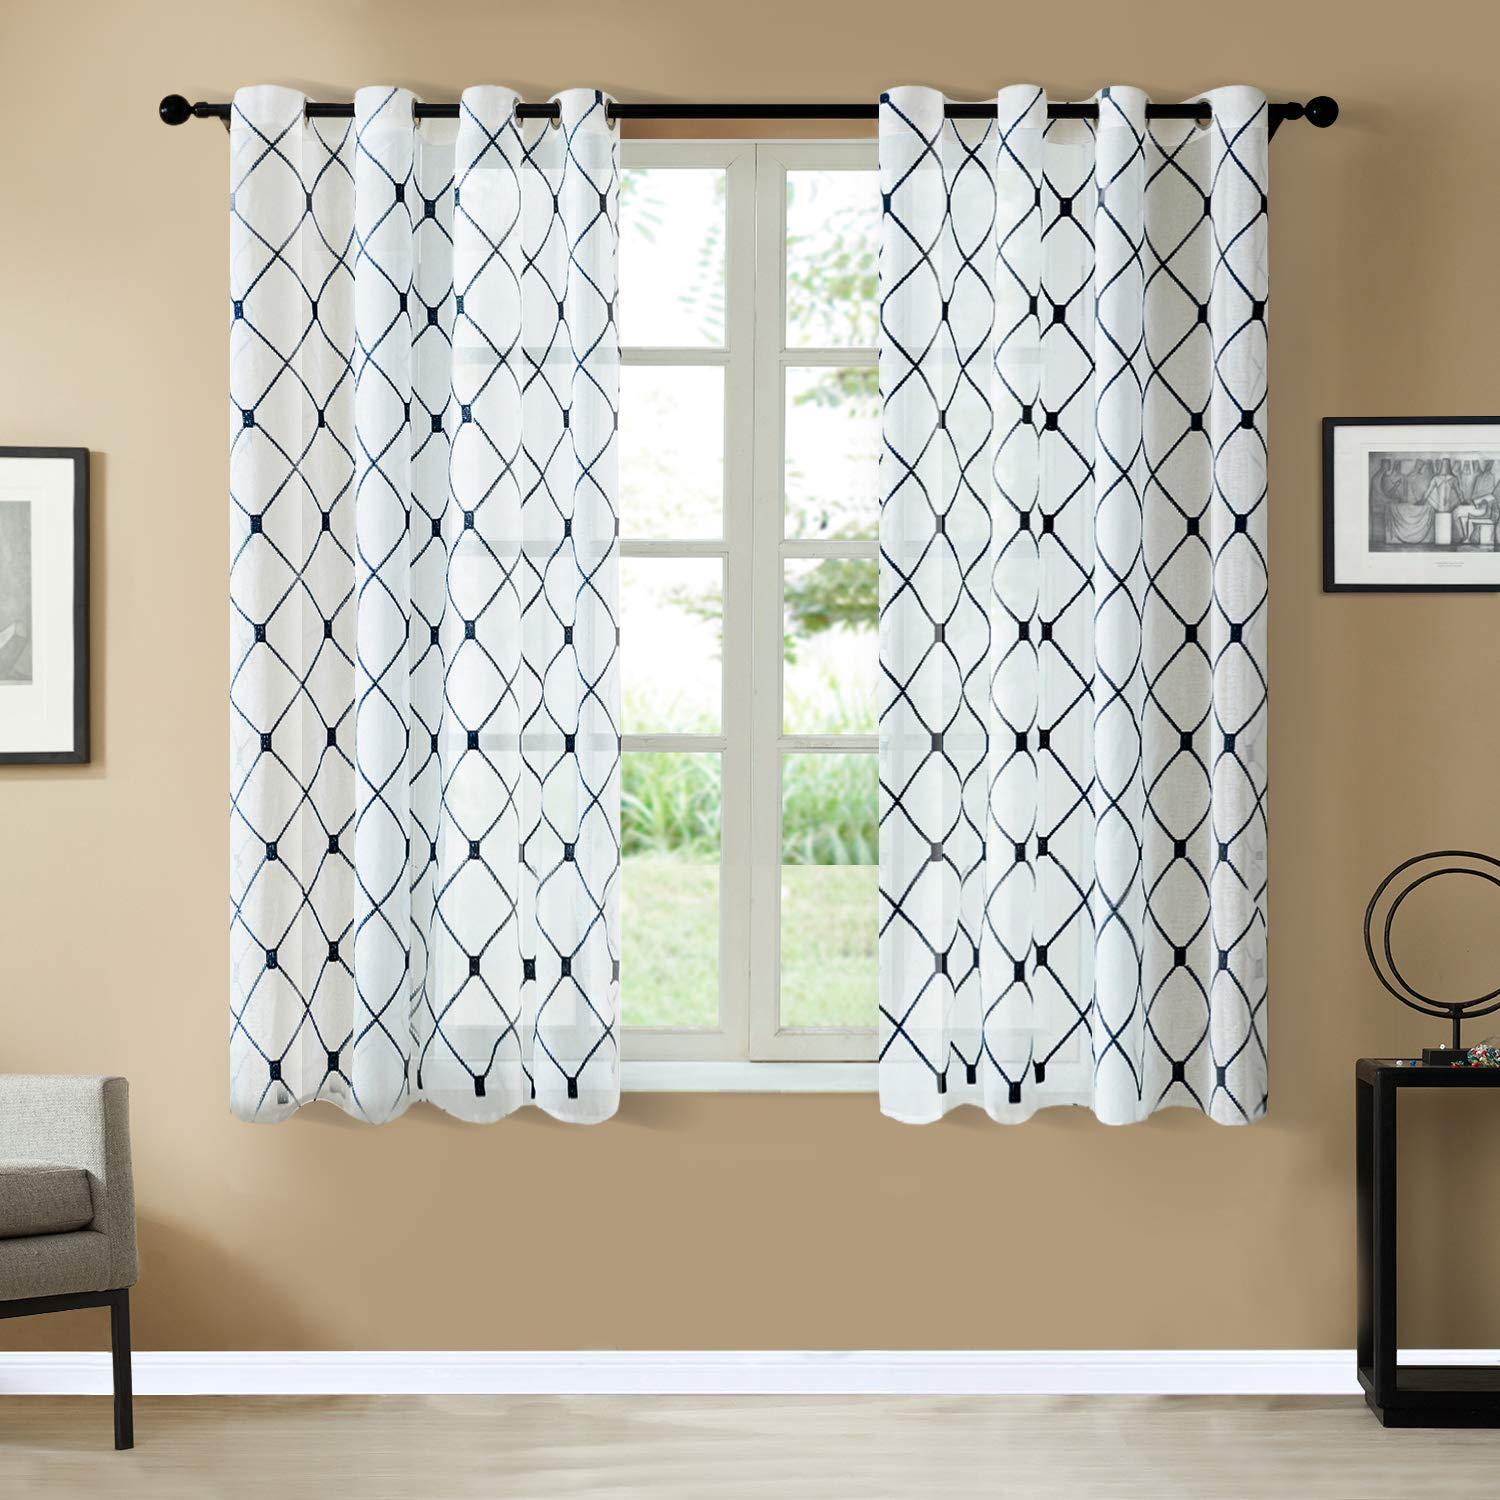 2 Panels Top Finel Grey Sheer Curtains 63 Inch Length for Living Room Bedroom Diamond Embroidered Grommet Window Curtains